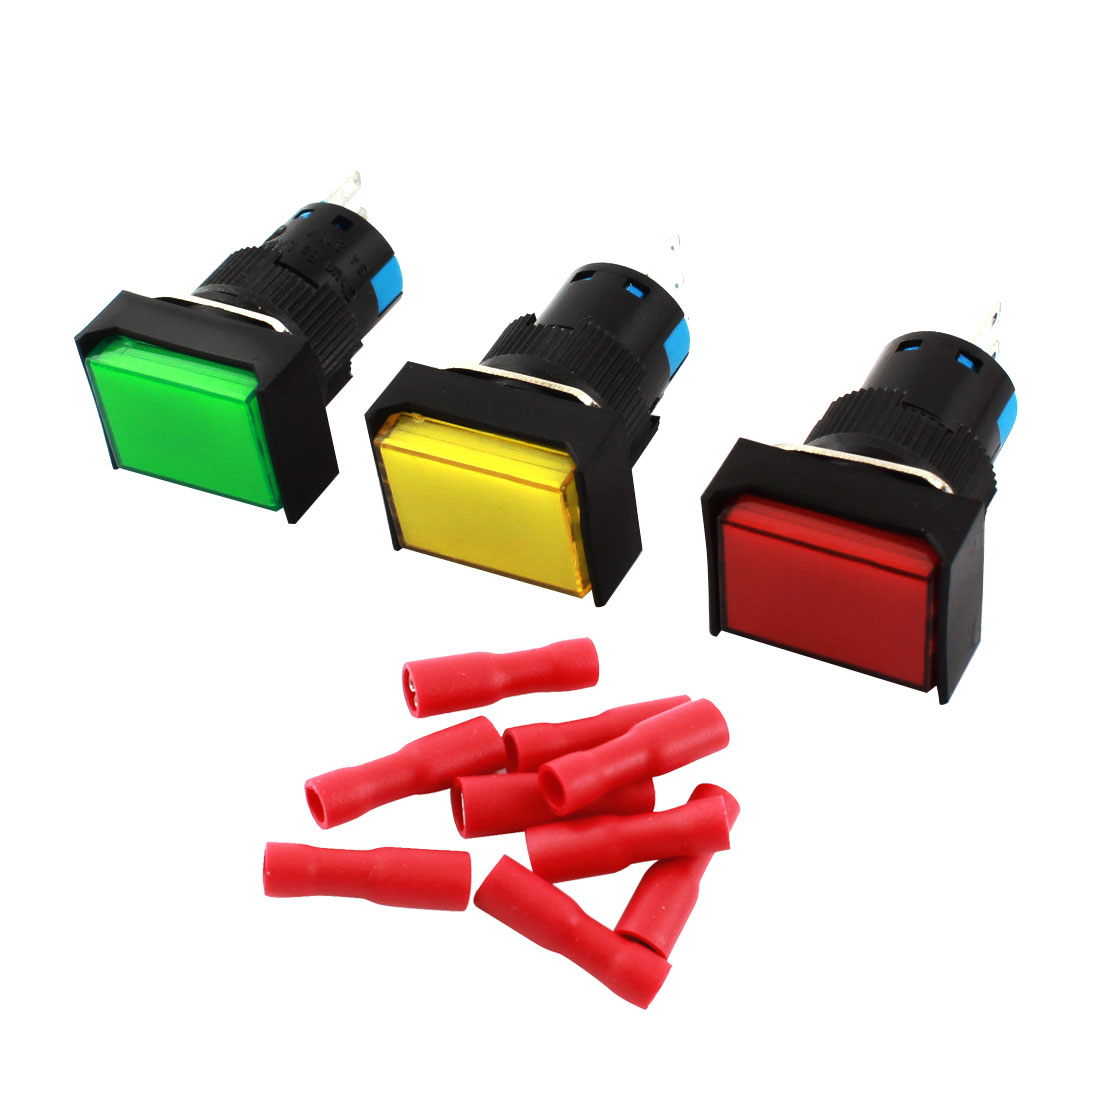 3pcs AC 250V 5A 3Pins 16mm Thread Panel SPDT Momemtary Red Green Yellow Button Rectangle Head Pushbutton Switch + 9pcs Crimp Terminals